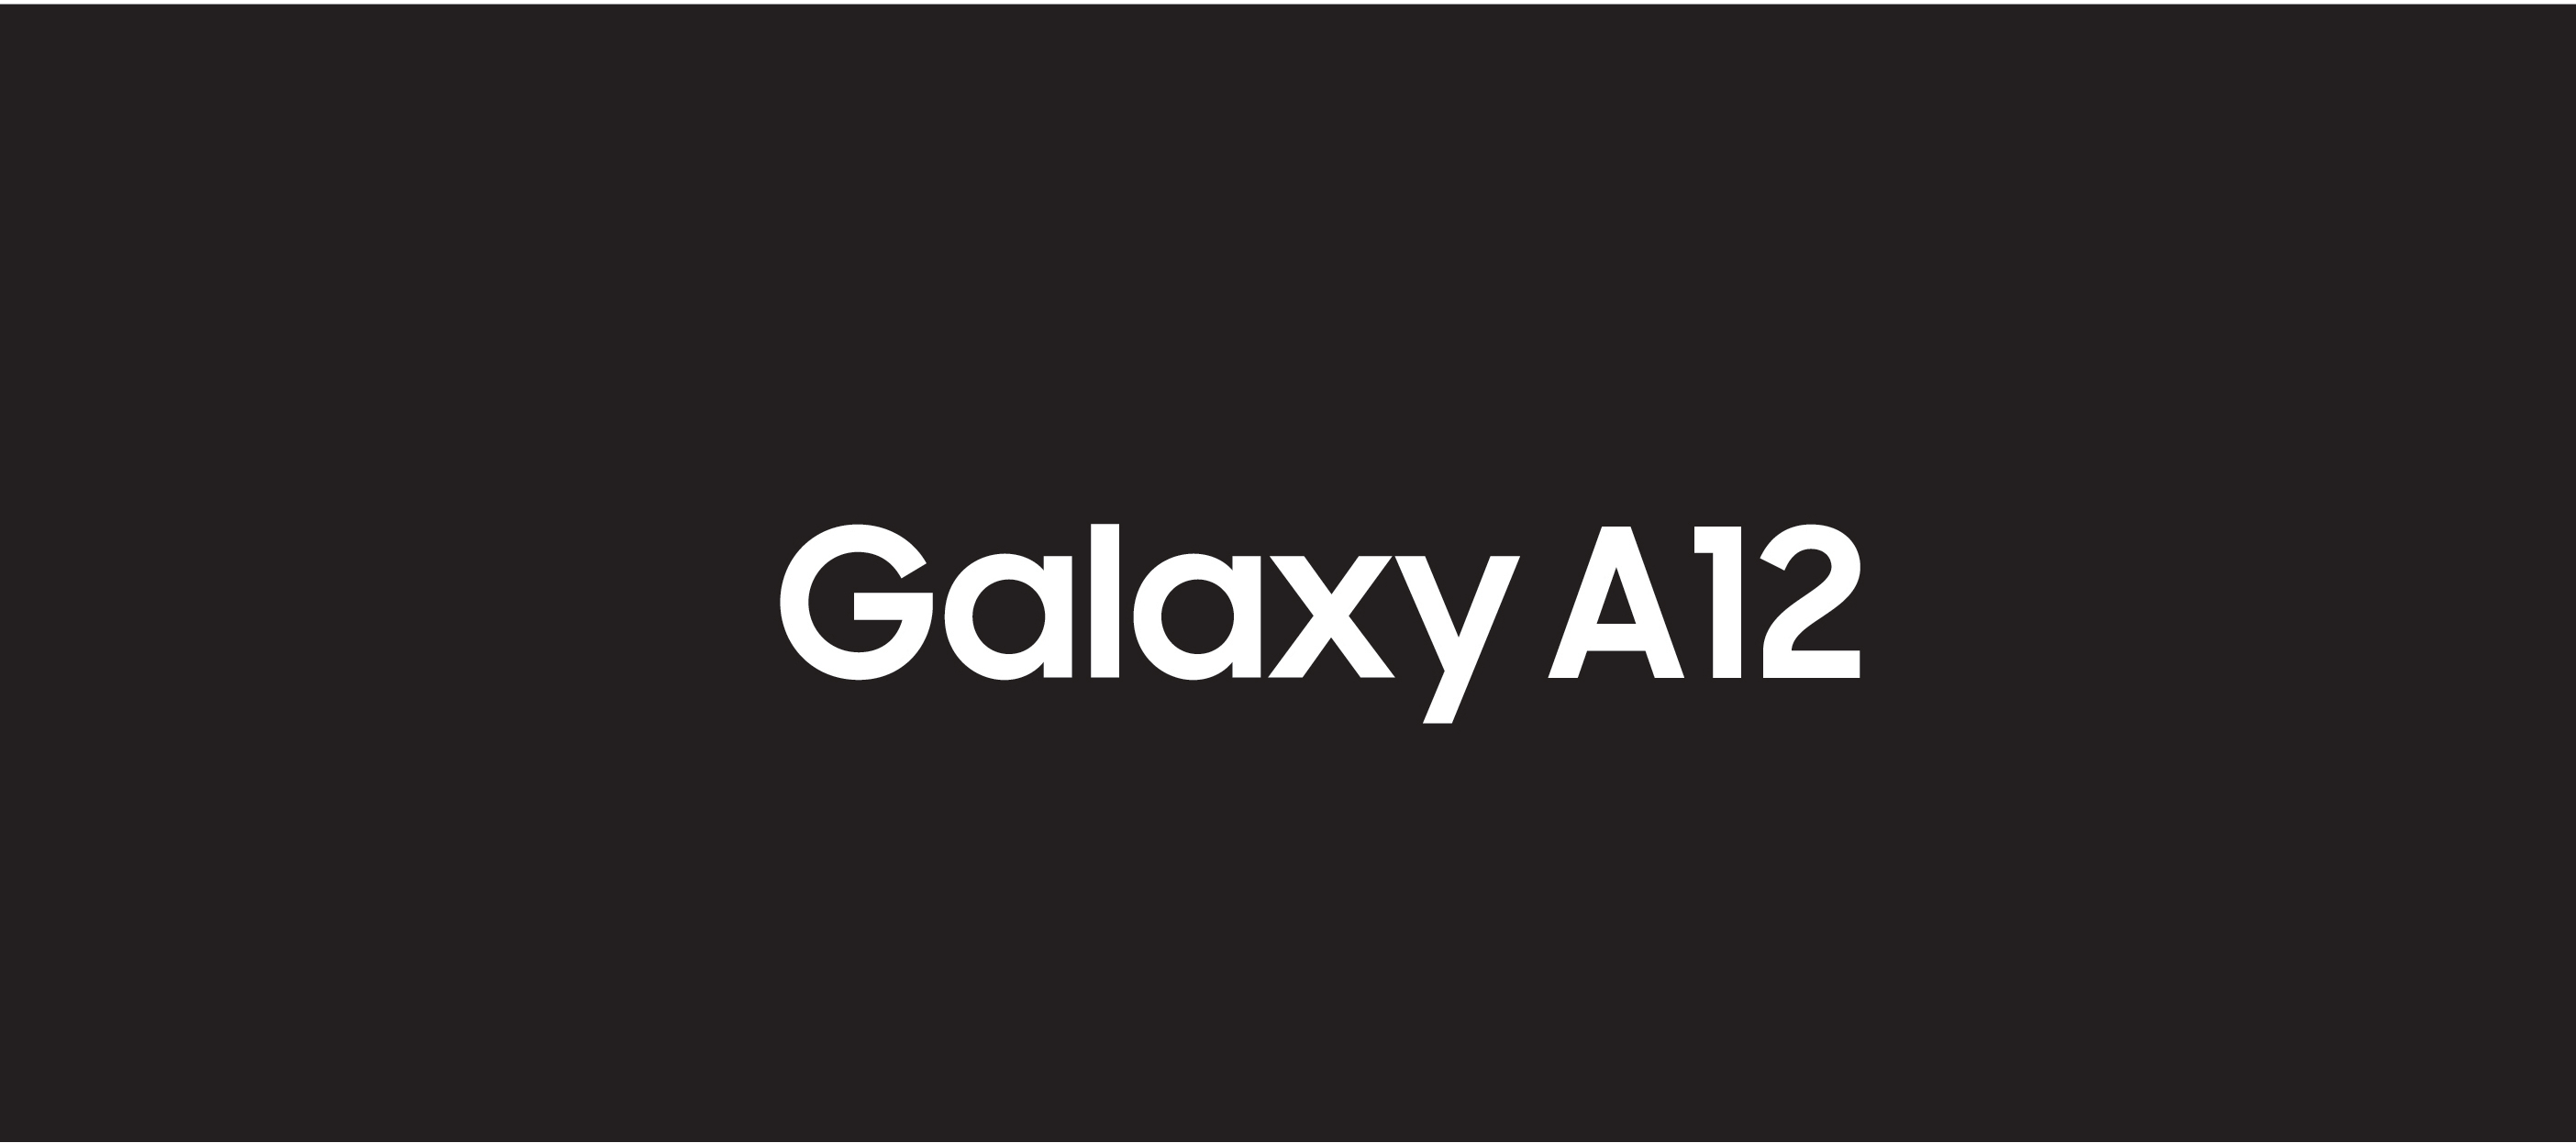 New Samsung Galaxy A12